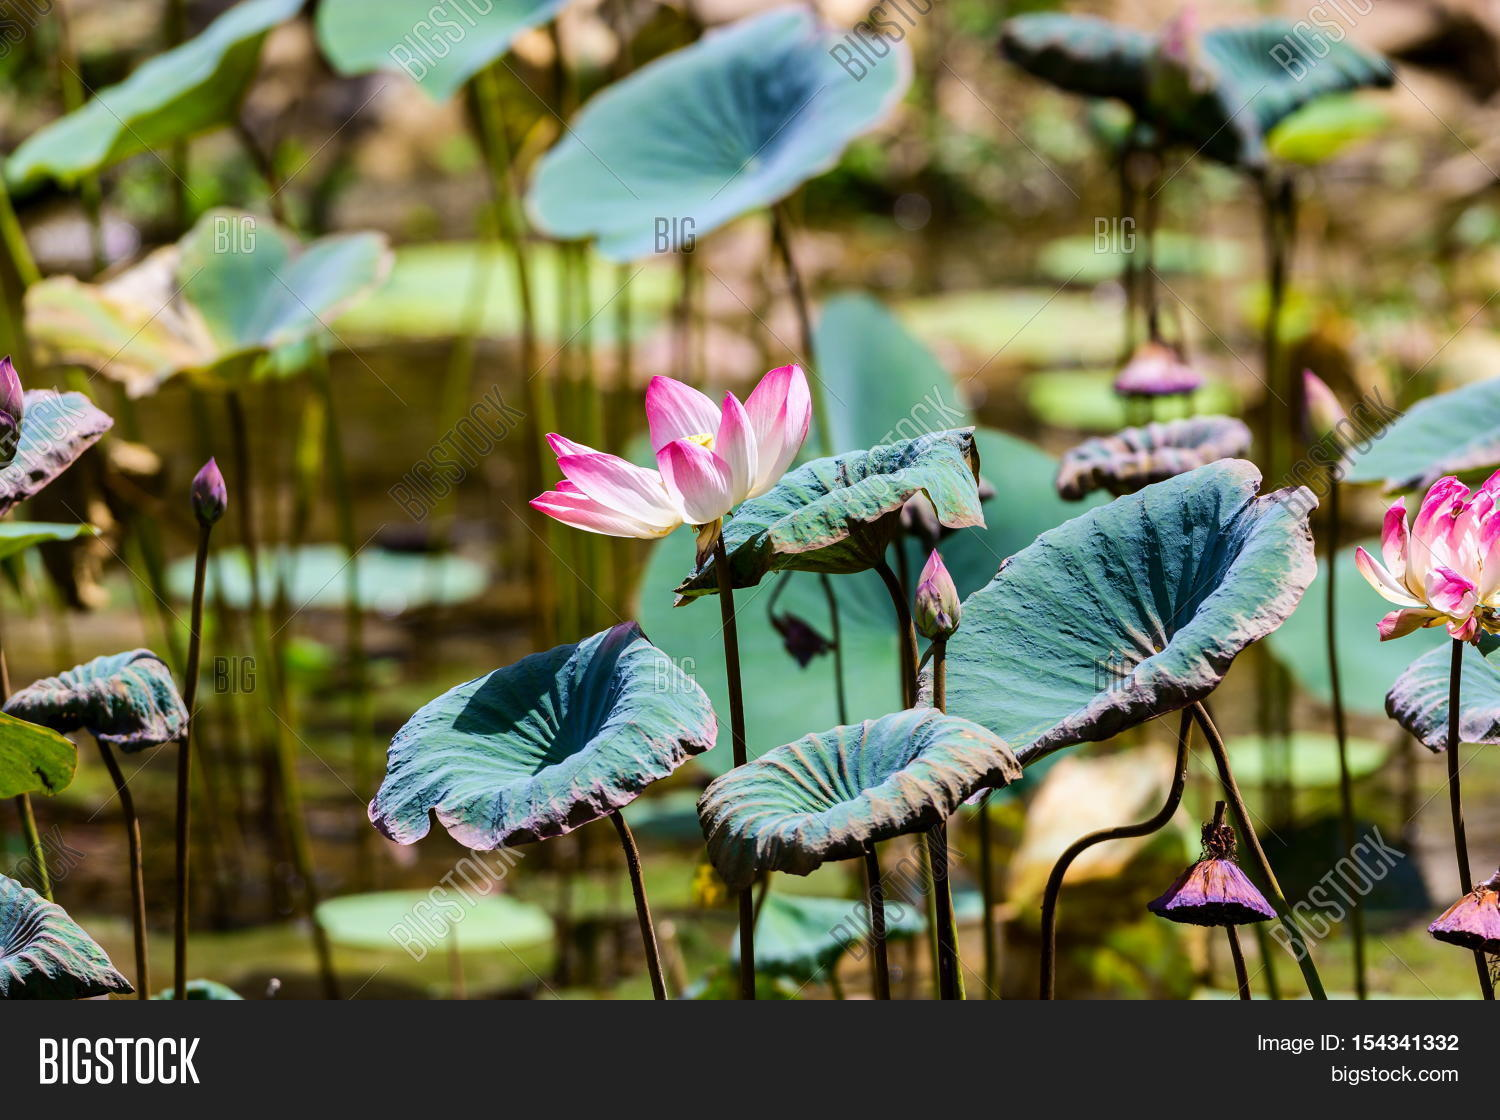 Lotus national flower image photo free trial bigstock the lotus the national flower of india is a symbol of supreme reality mightylinksfo